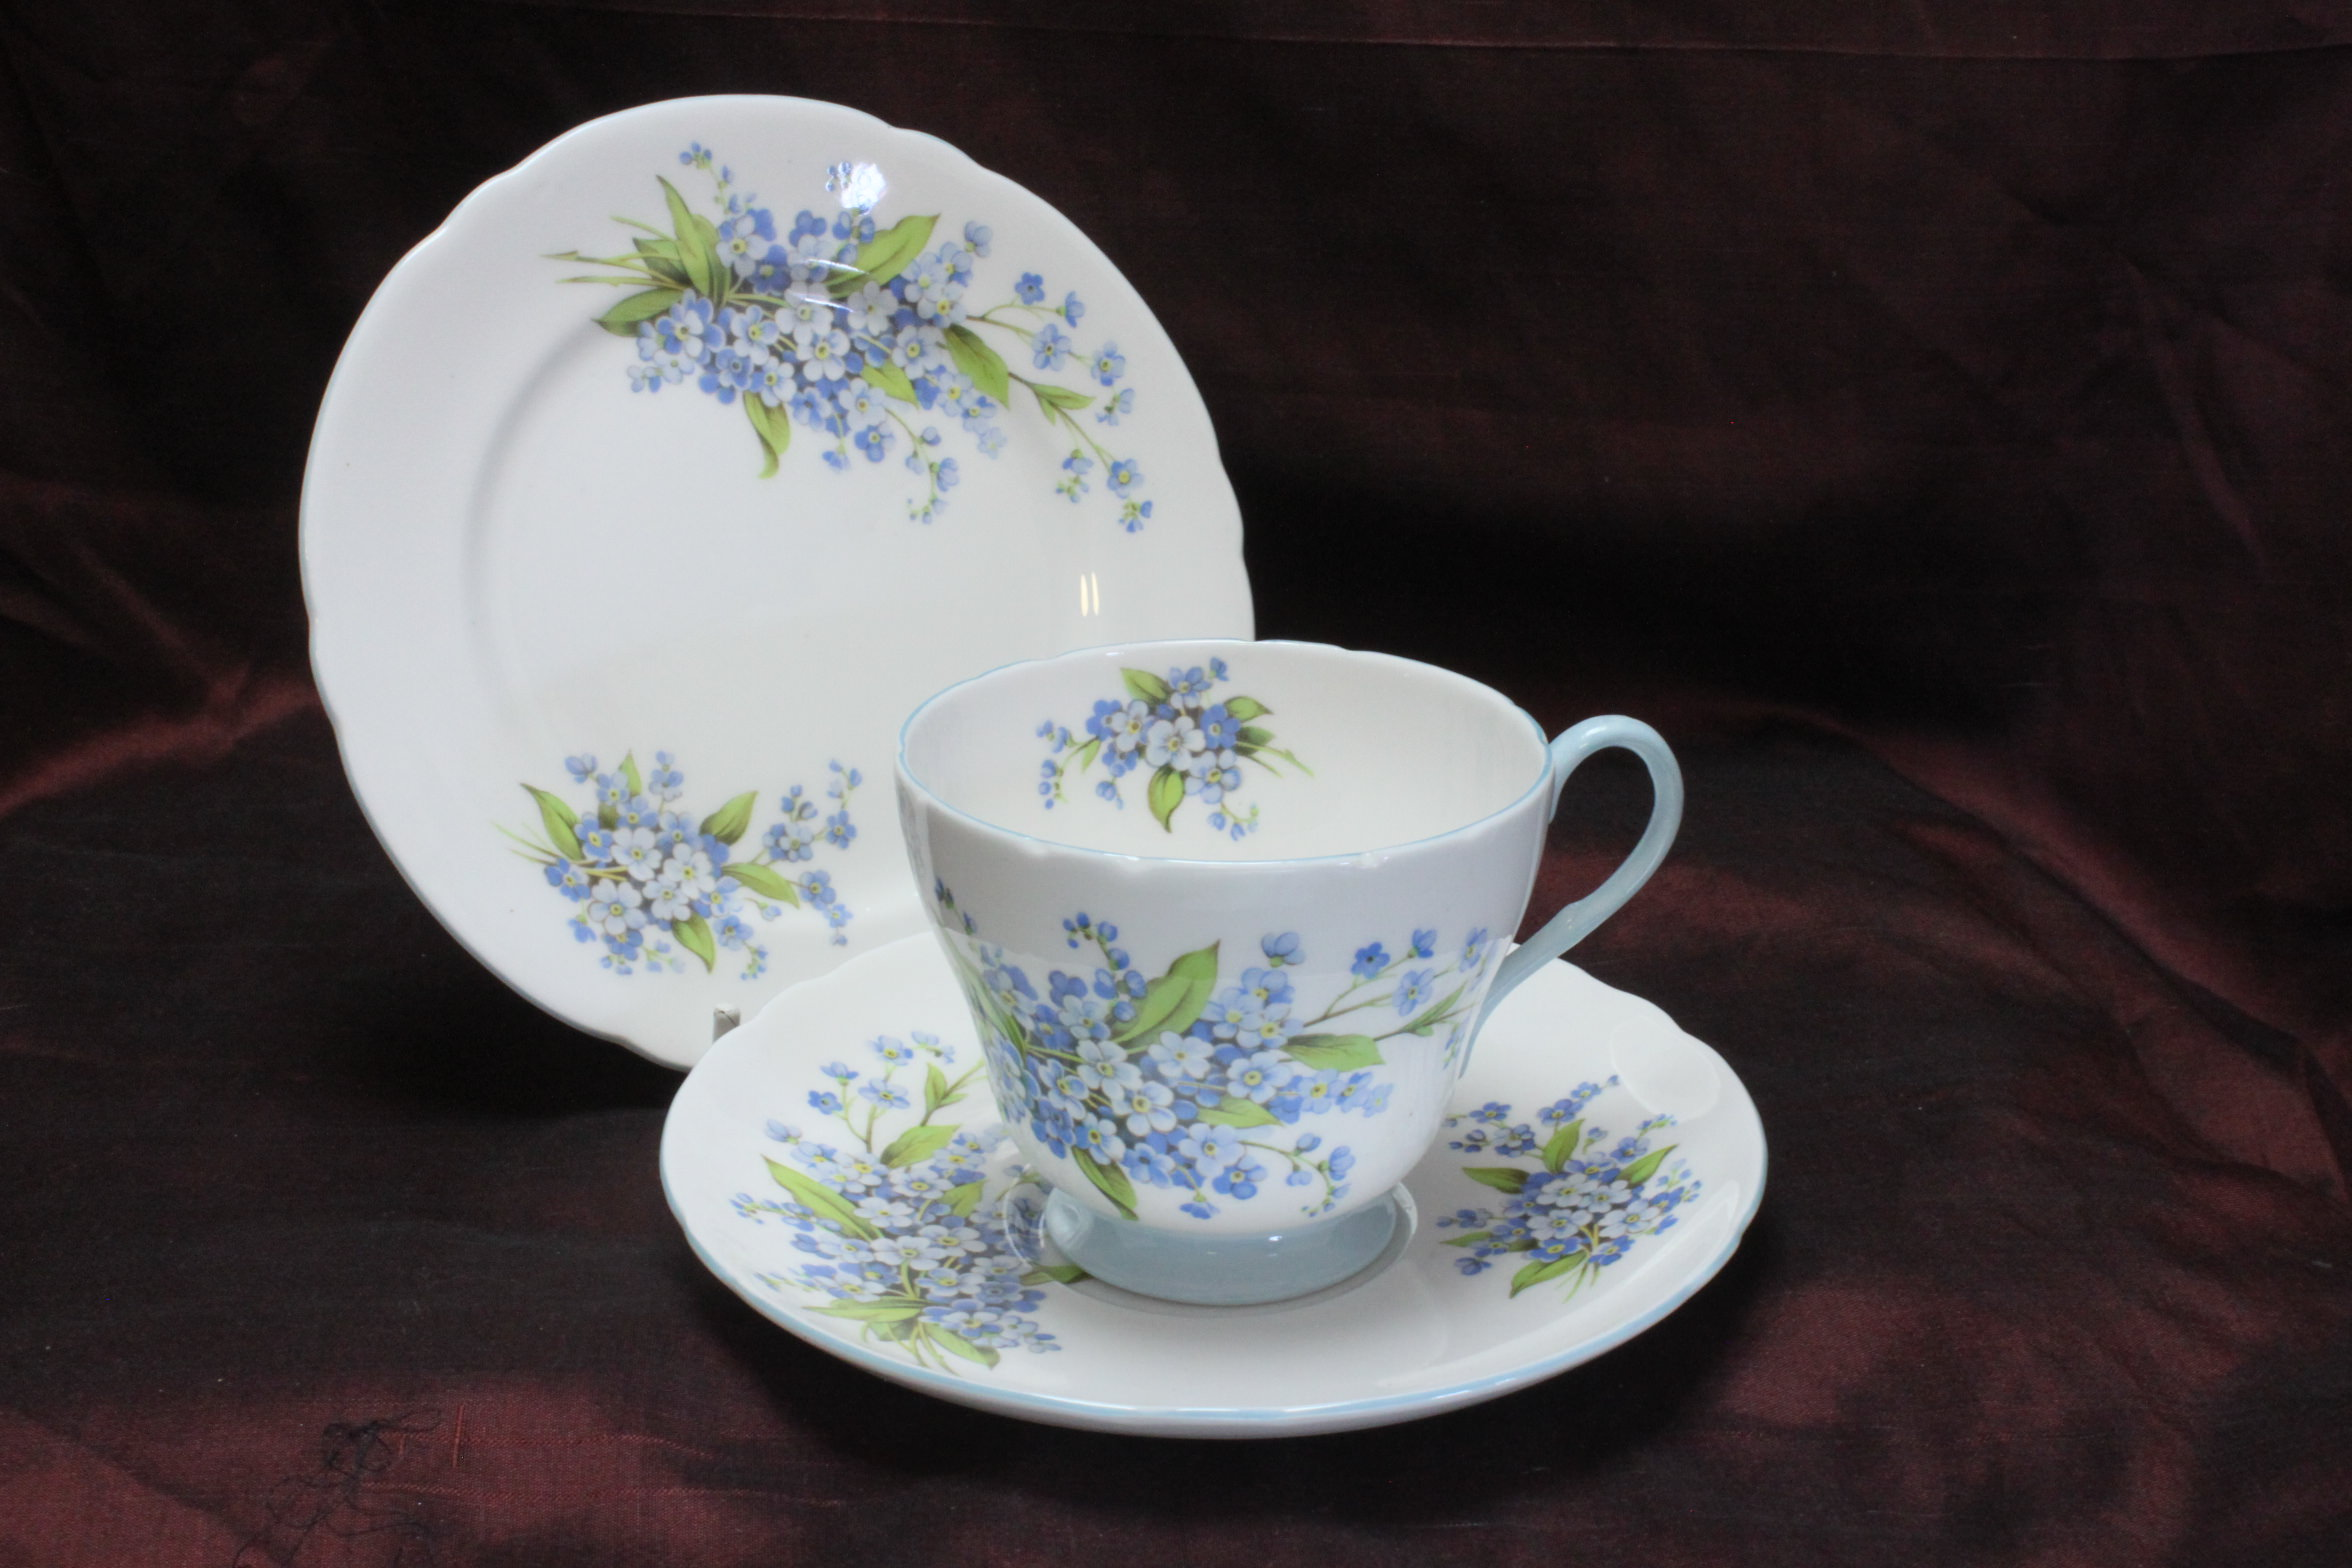 Shelley cup saucer and plate Forget-me-nots pattern 2394